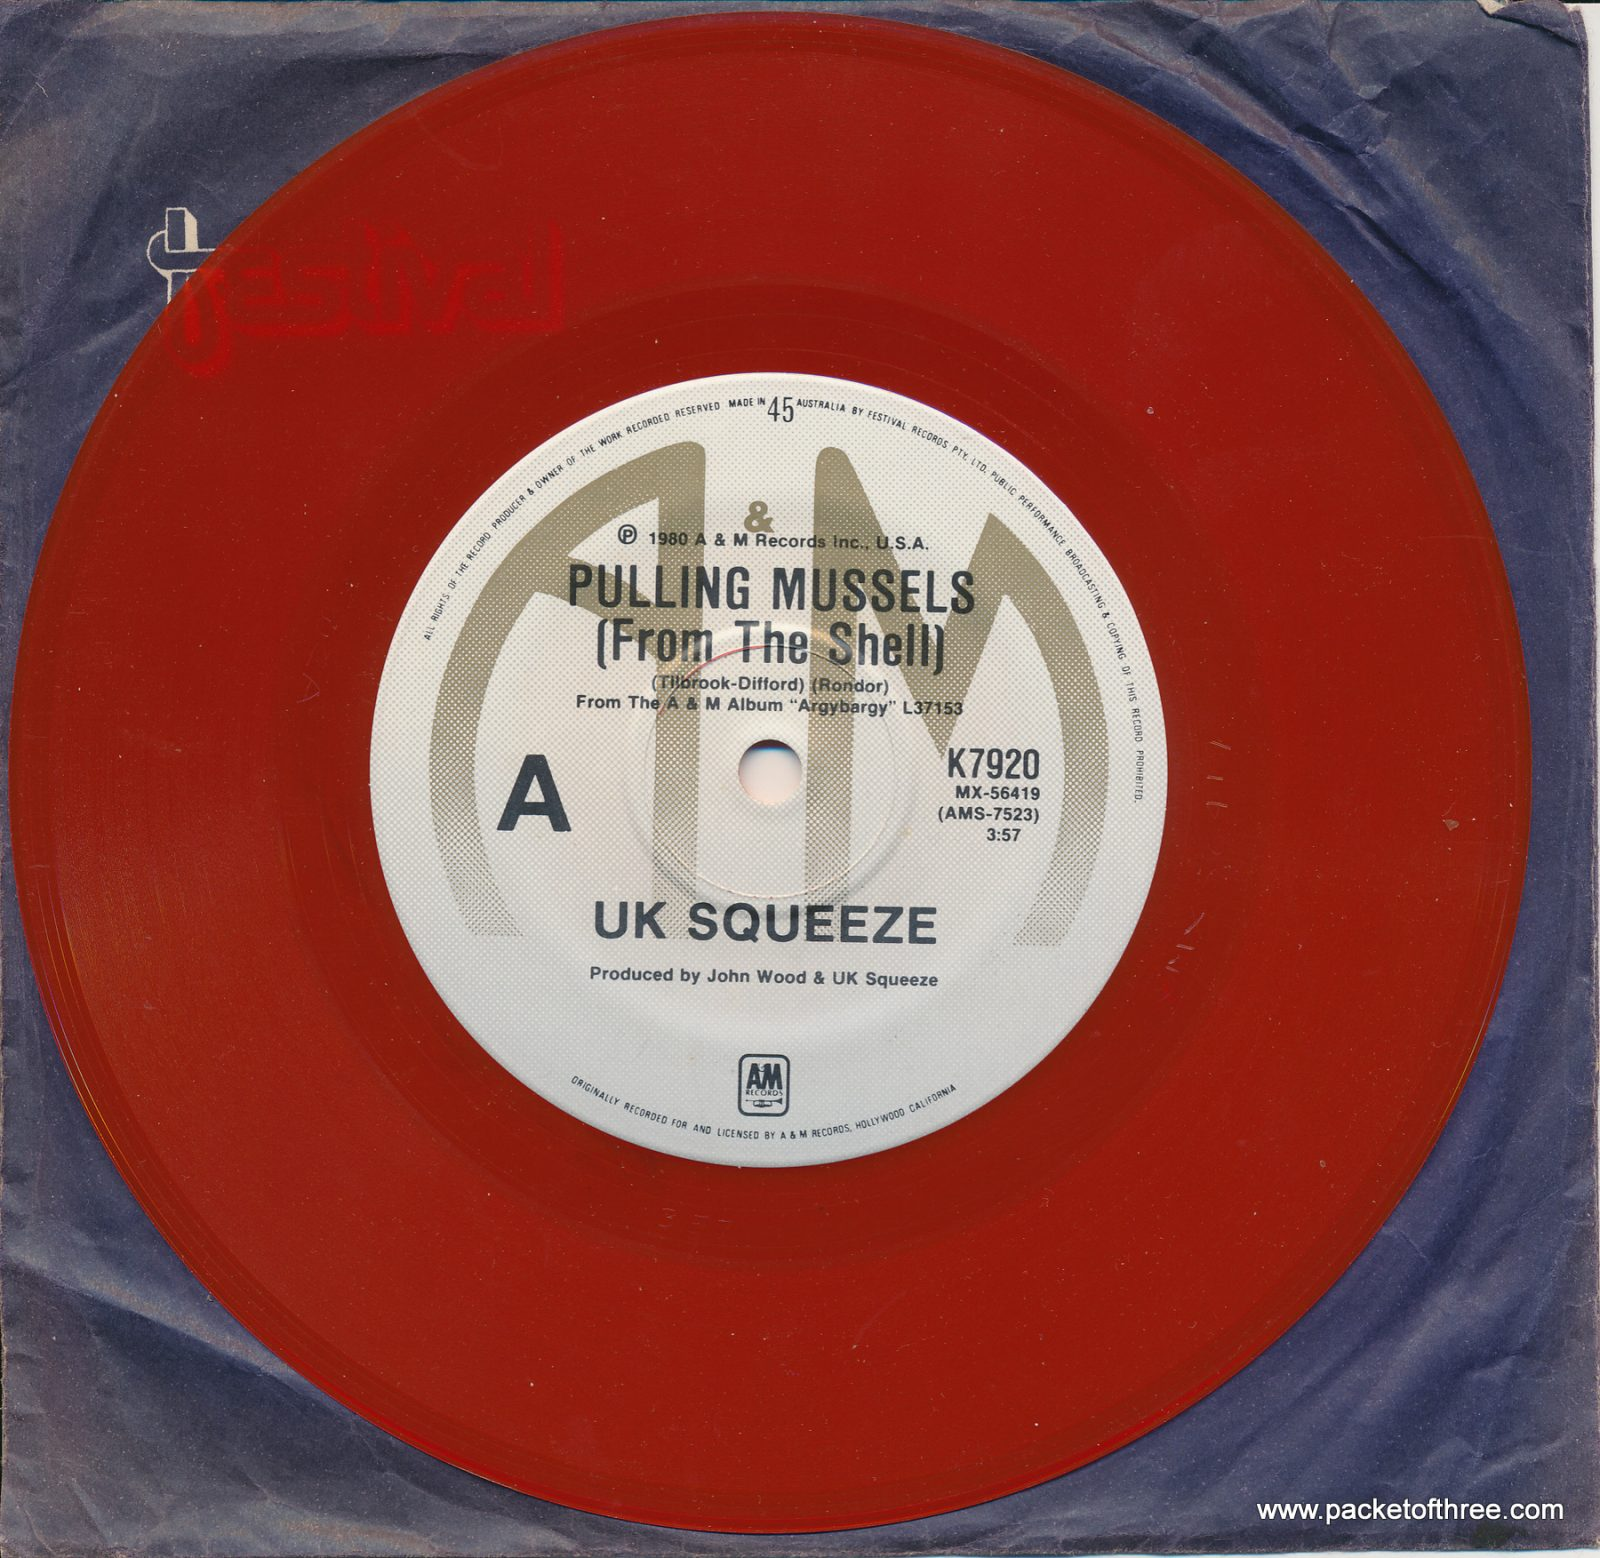 "Pulling Mussels (From the Shell) - Australia - 7"" - red vinyl - paper sleeve"